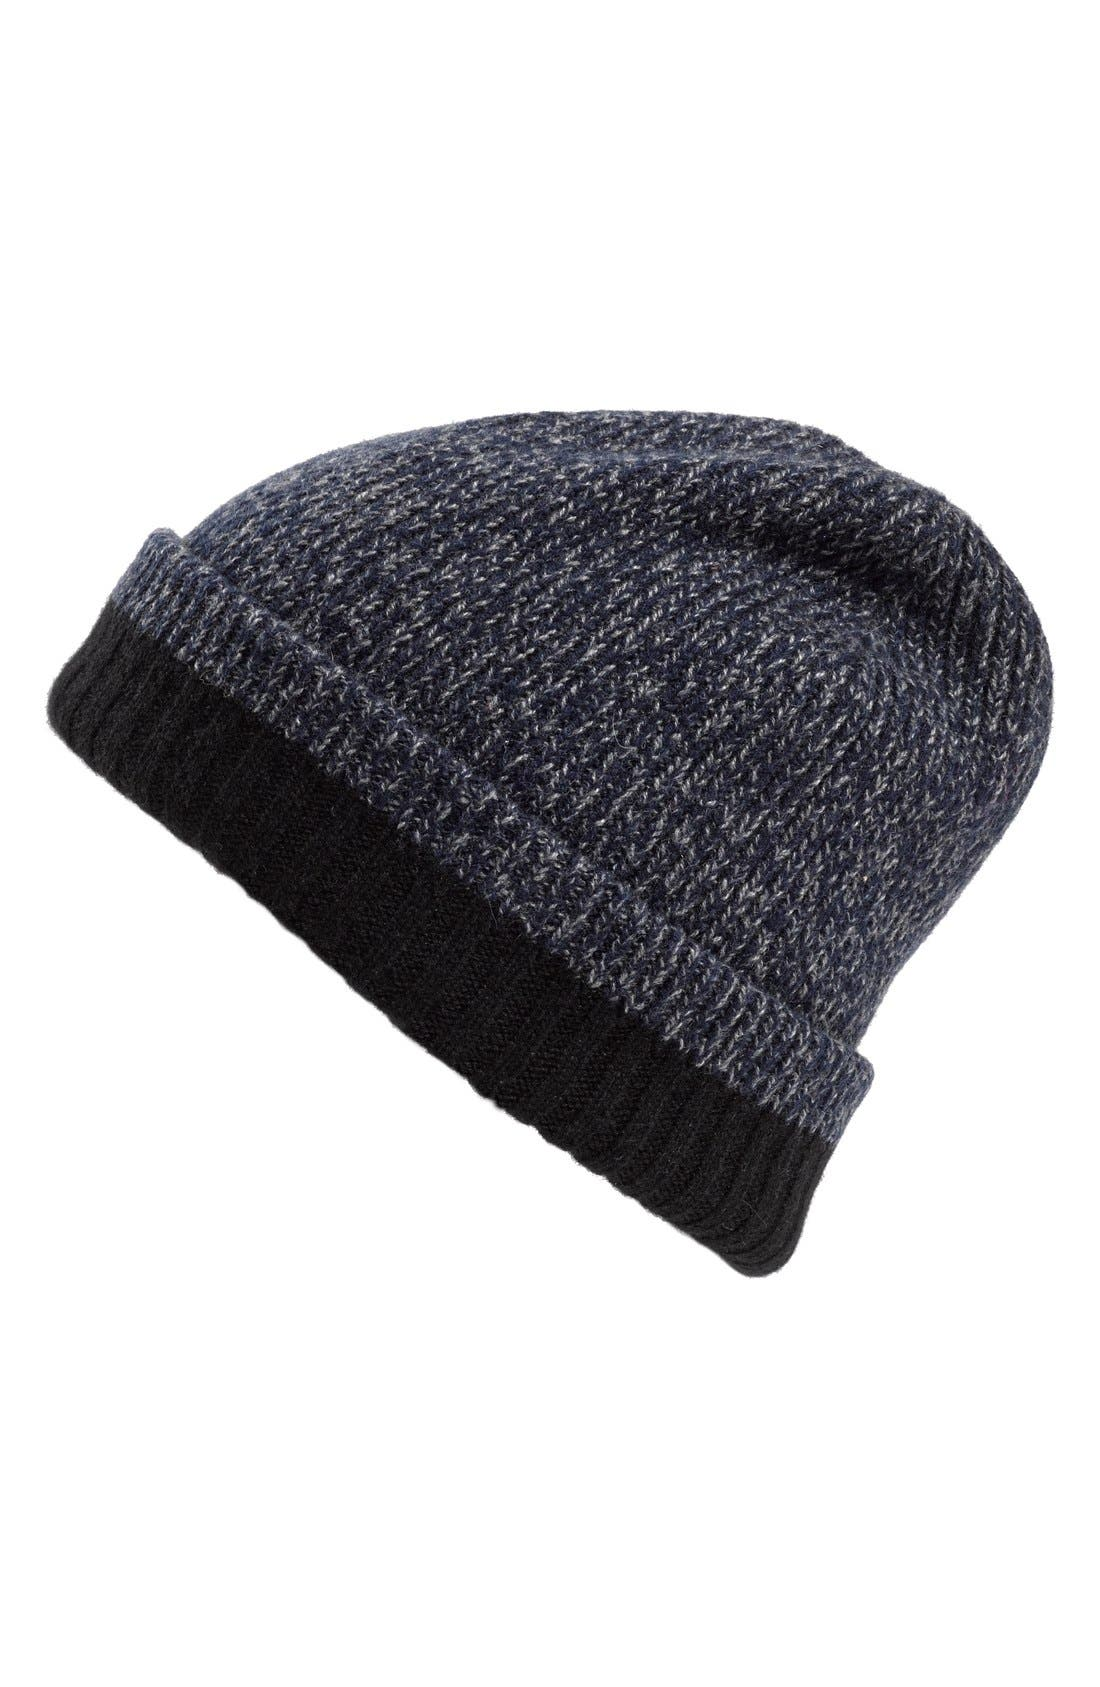 Alternate Image 1 Selected - rag & bone 'Francesca' Cashmere Beanie